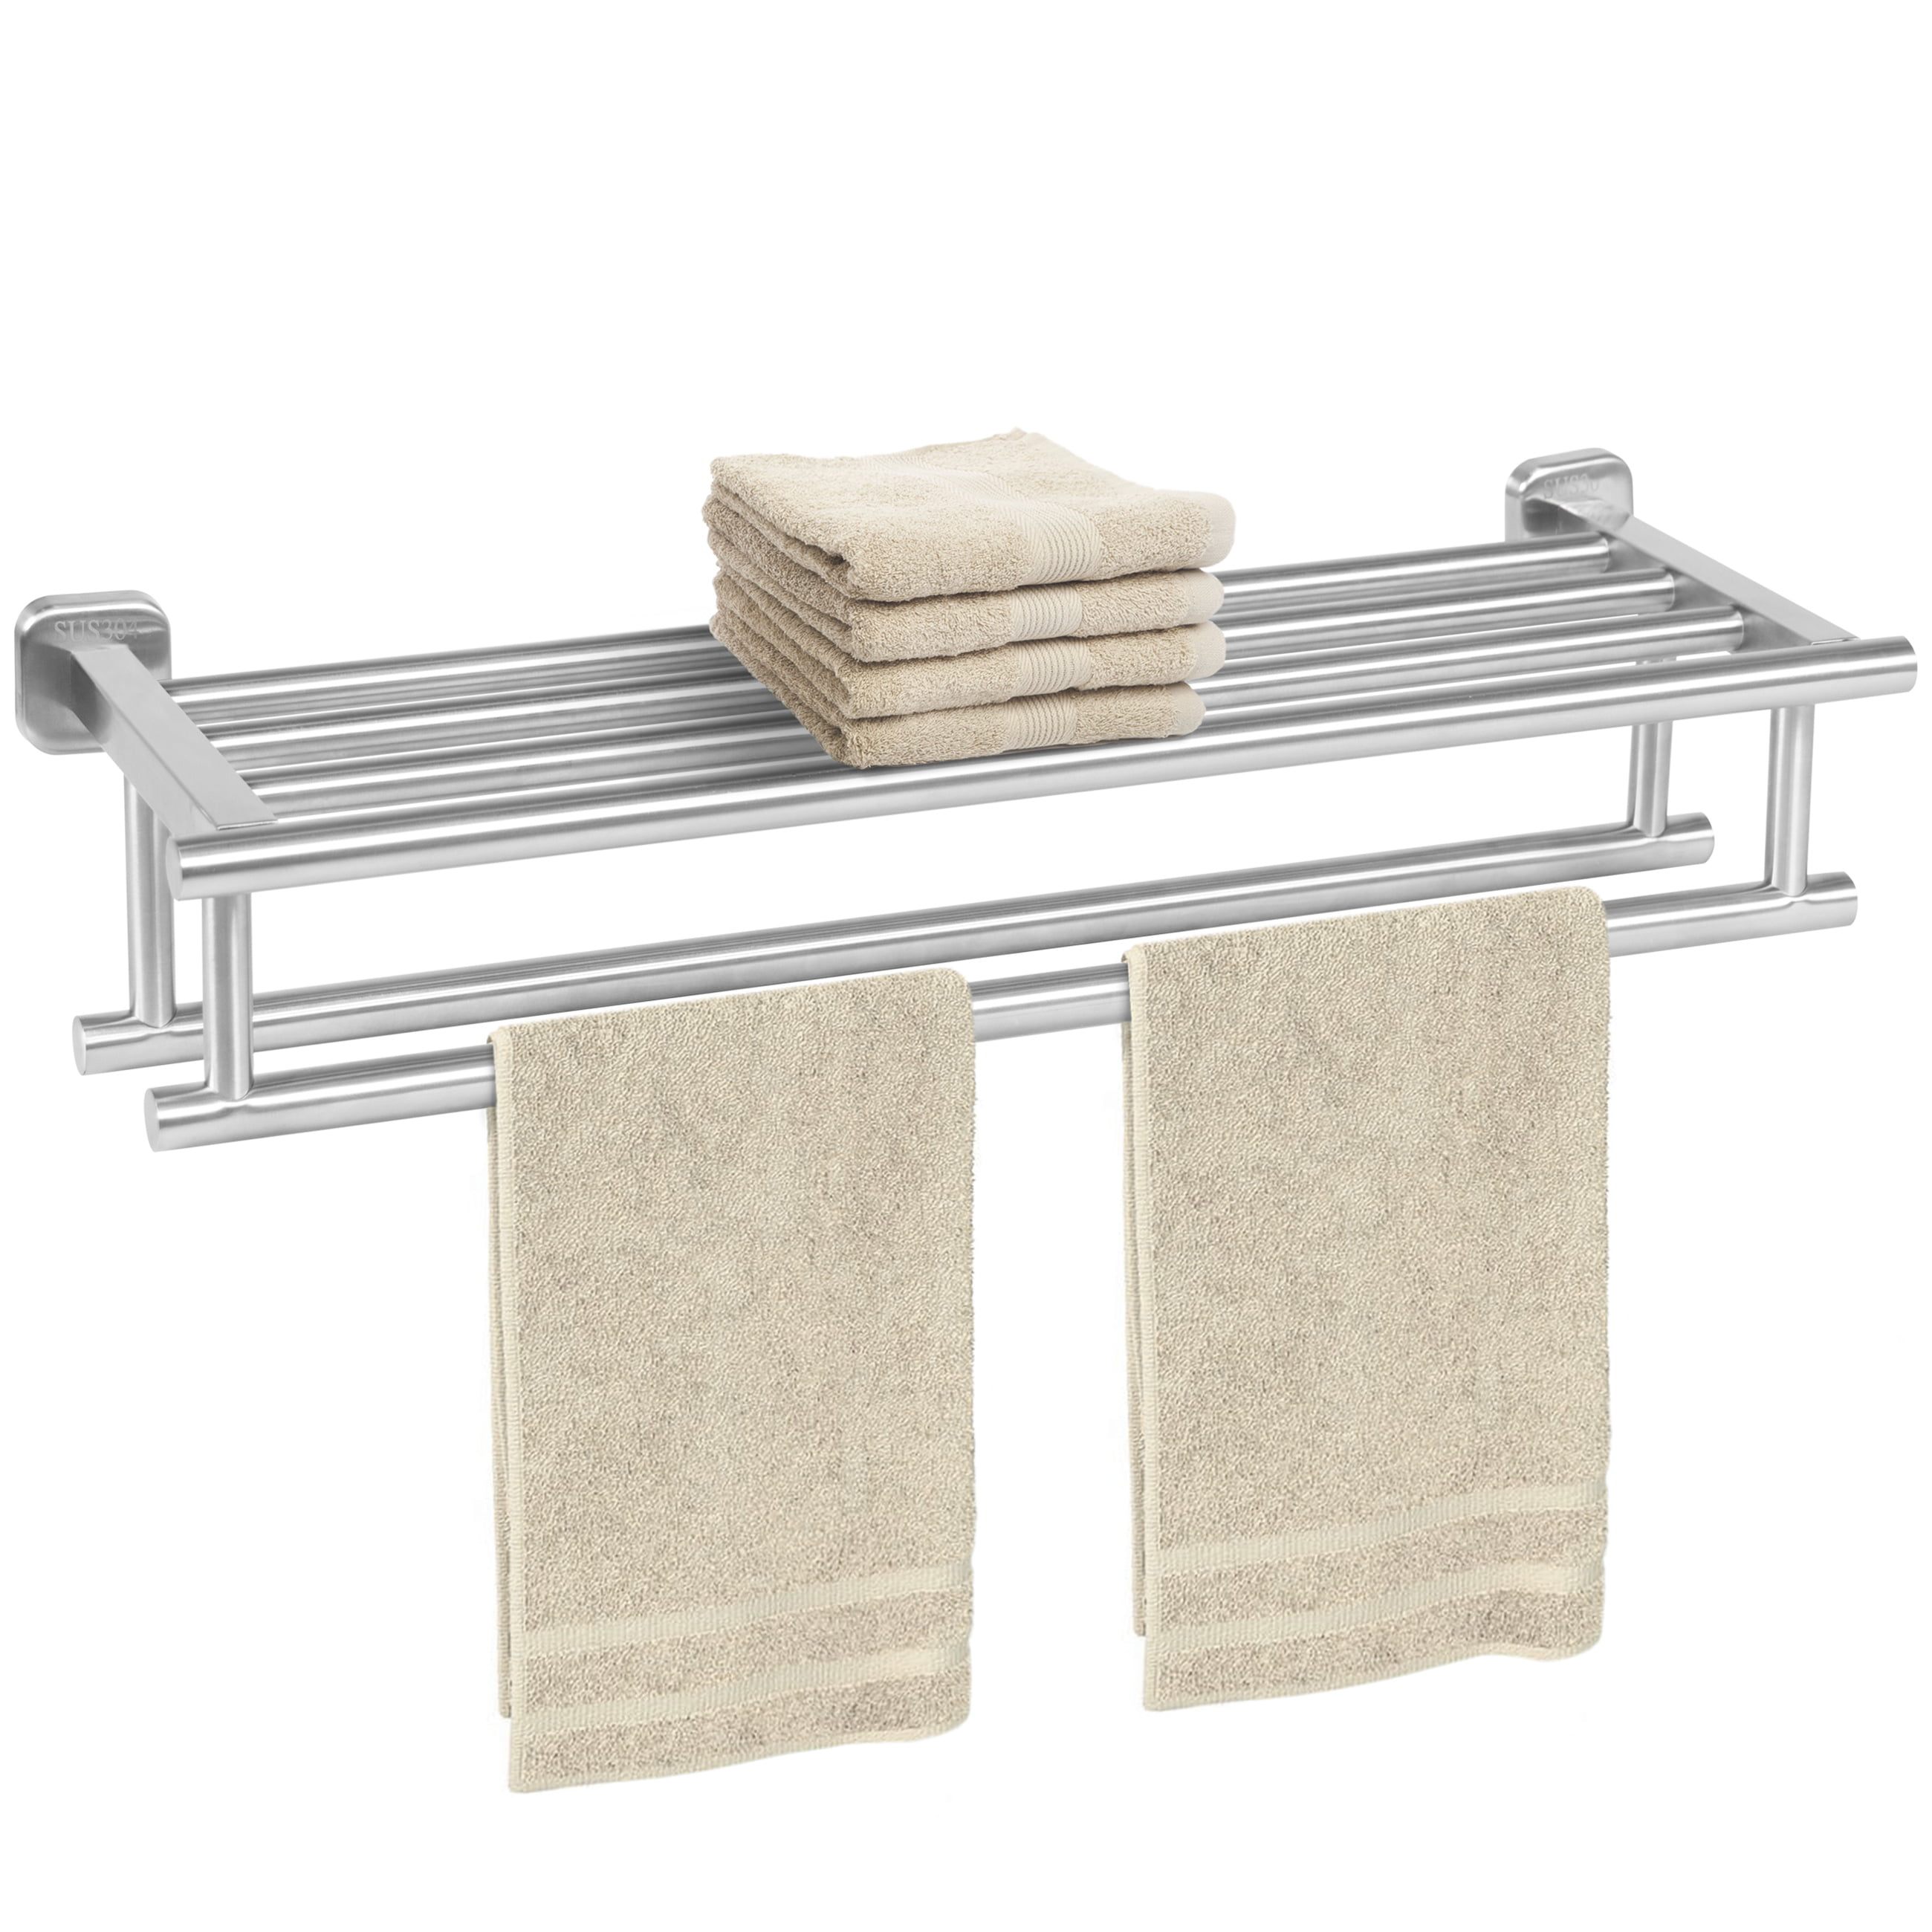 Best Choice Products Stainless Steel Double Towel Rack ...